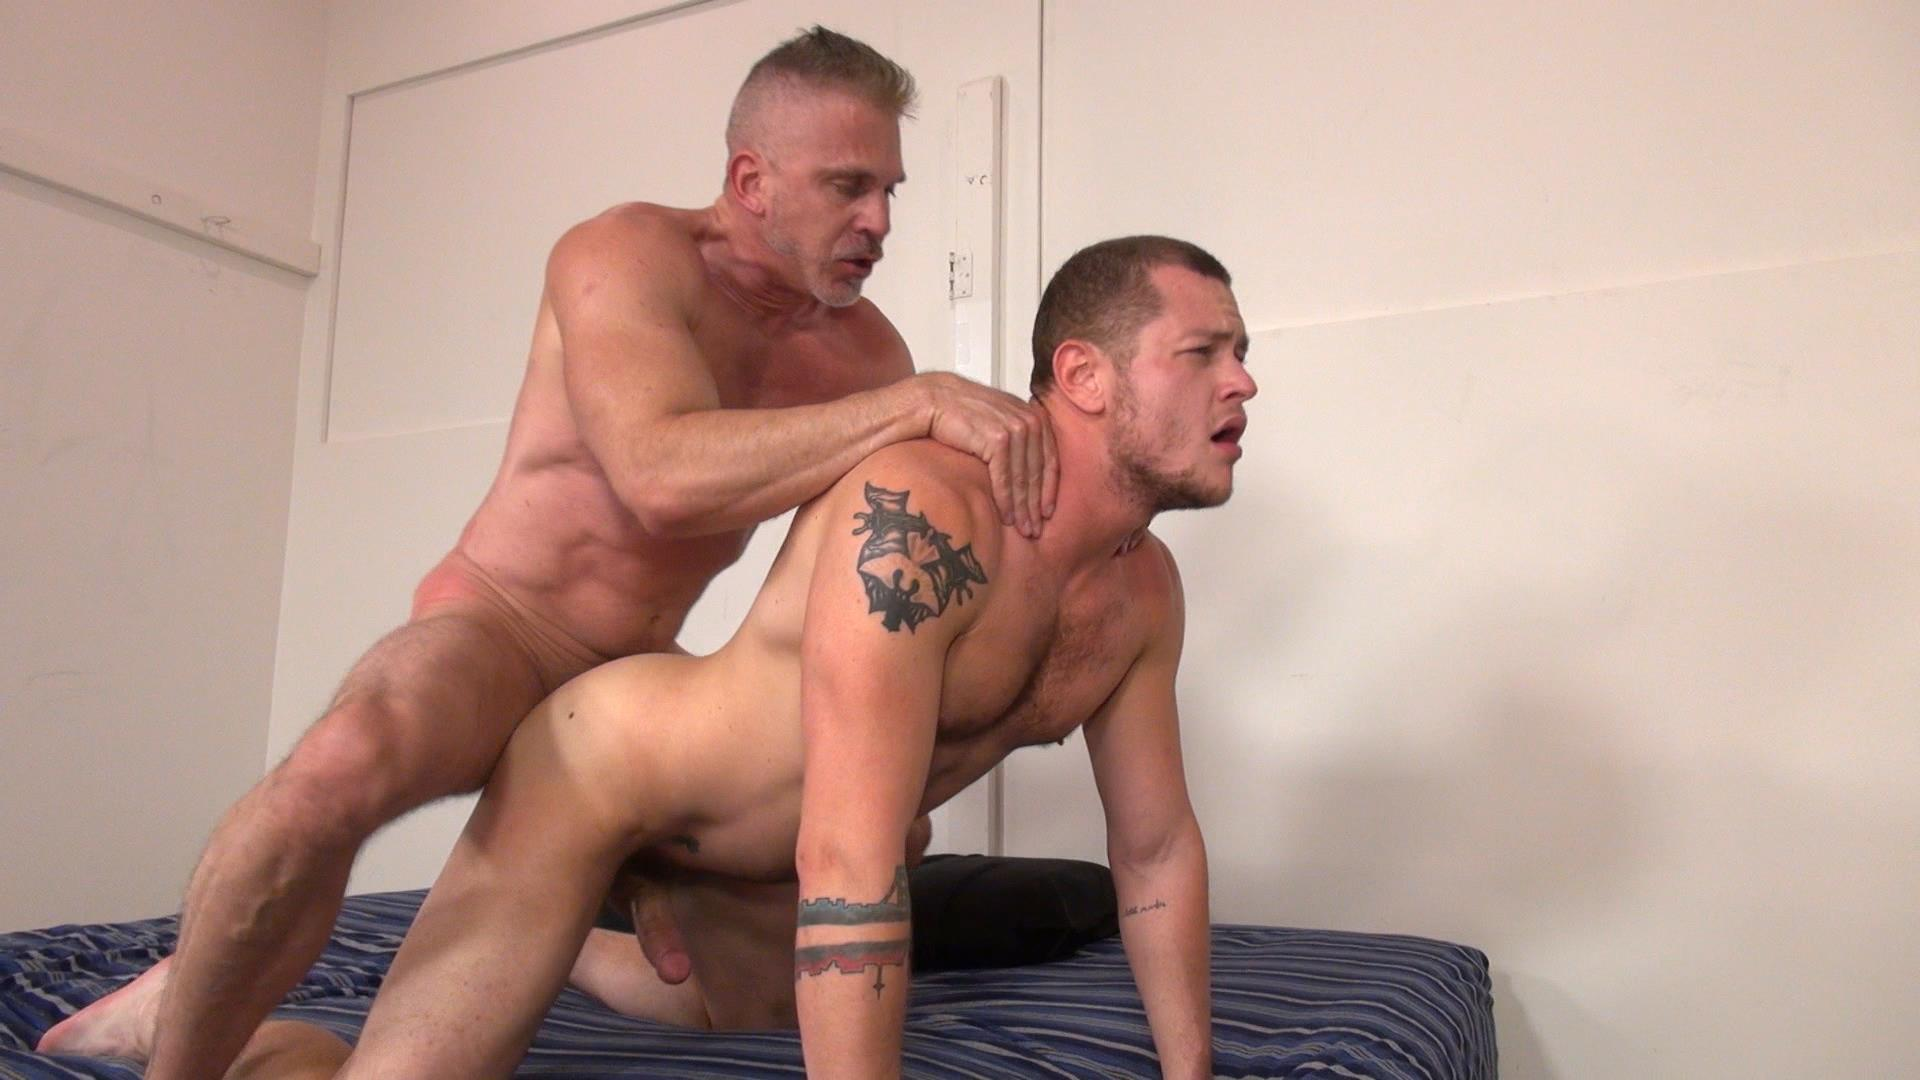 Raw-and-Rough-Sam-Dixon-and-Blue-Bailey-Daddy-And-Boy-Flip-Flip-Bareback-Fucking-Amateur-Gay-Porn-05 Blue Bailey Flip Flop Barebacking With A Hung Daddy